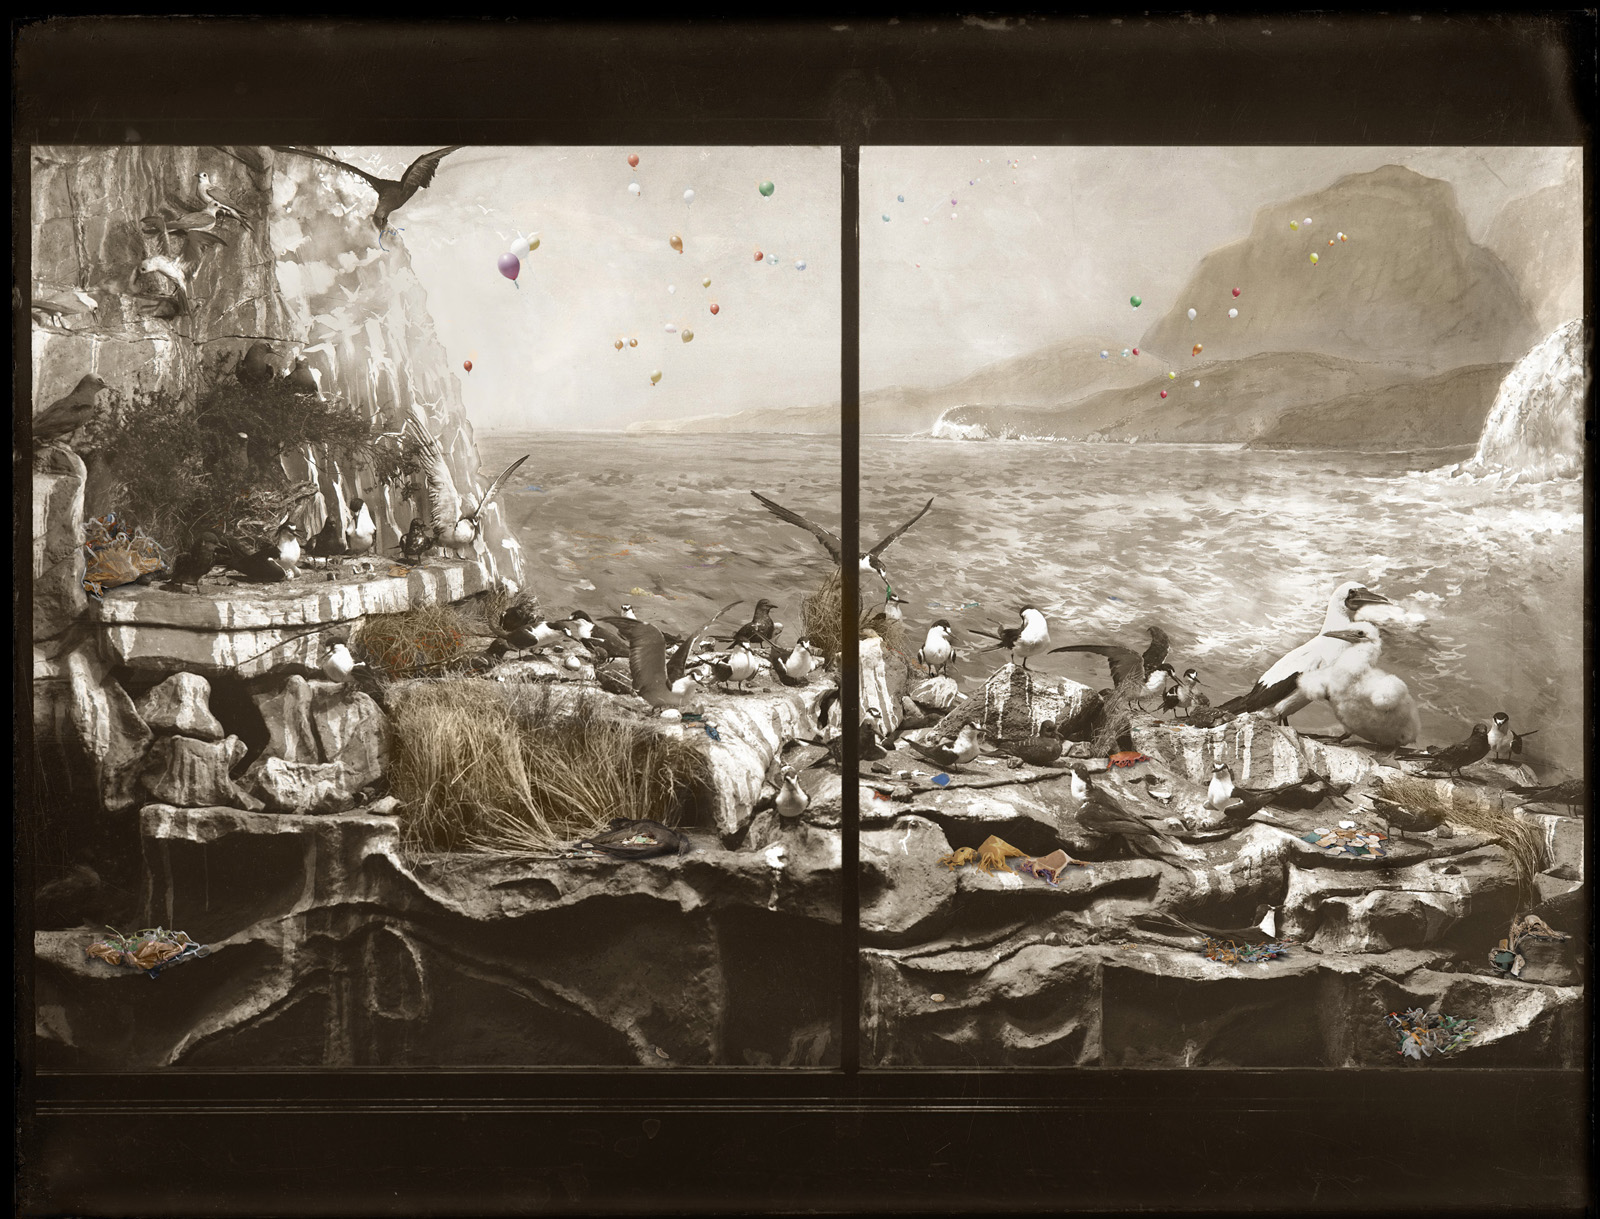 ANNE ZAHALKA    Sea Bird Colony, Admiralty Rocks with turbulent seas, Lord Howe Island   2019 Pigment ink on adhesive paper 275 x 375 cm Edition of 2  Source: Australian Museum